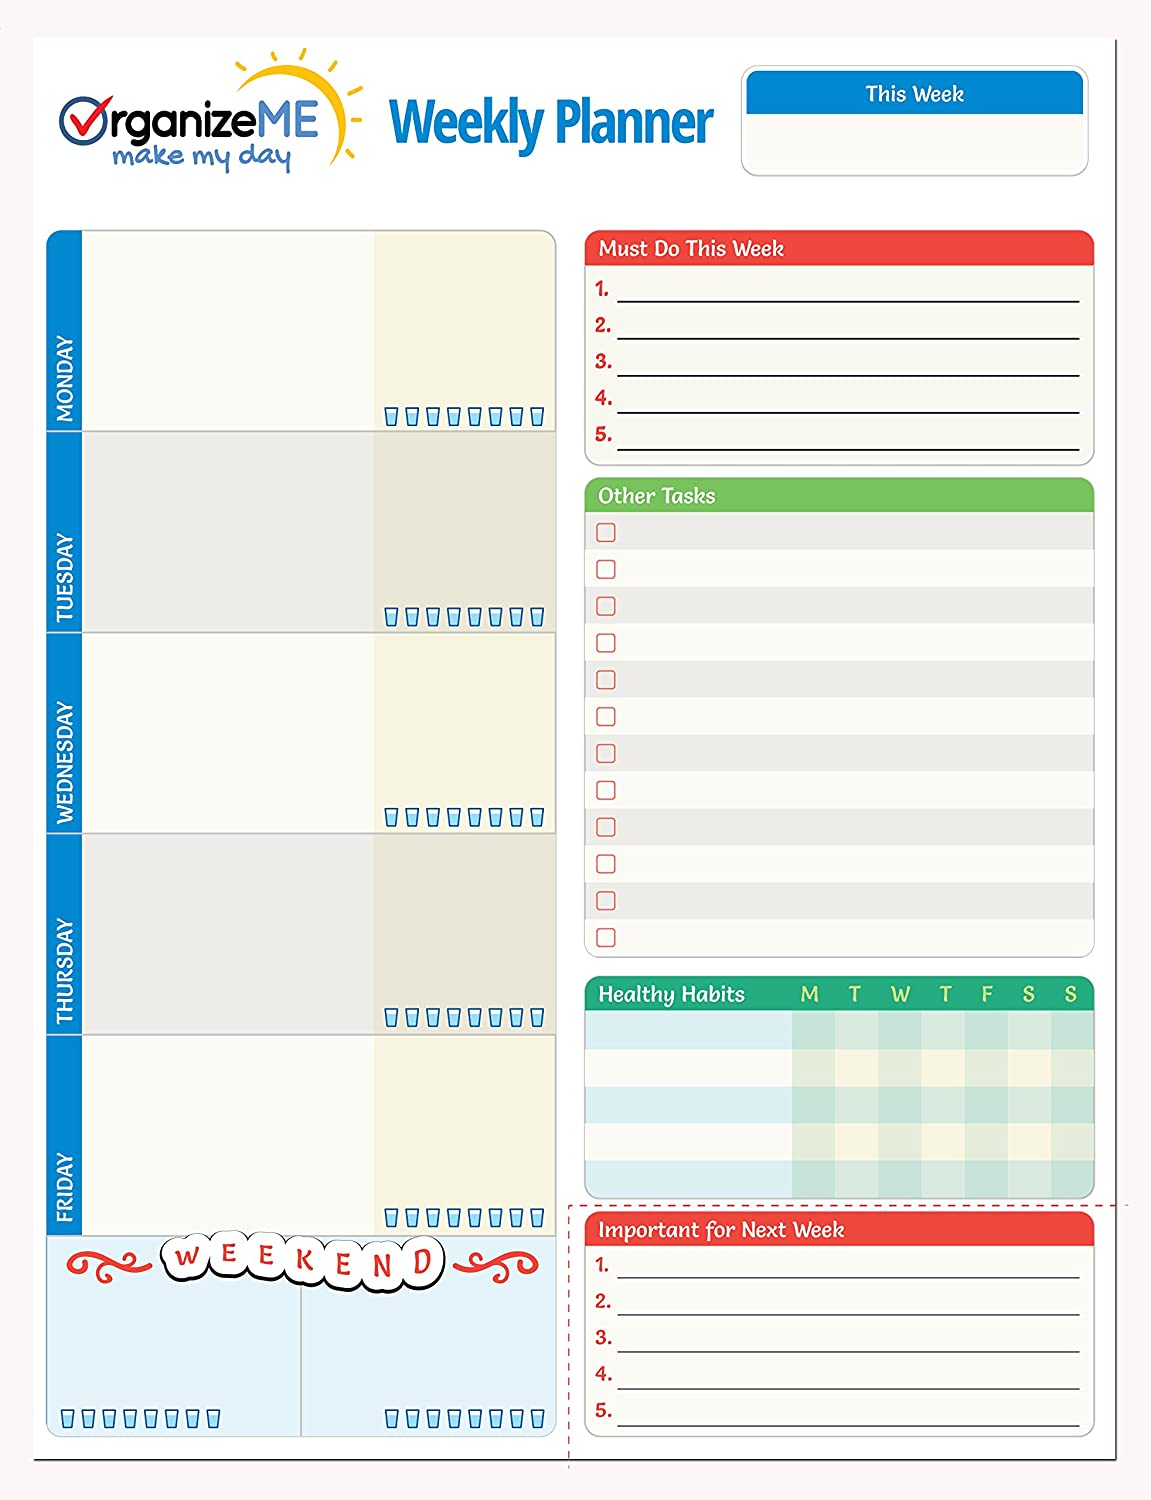 OrganizeME Weekly Planner Pad - Daily Chores & To Do Lists